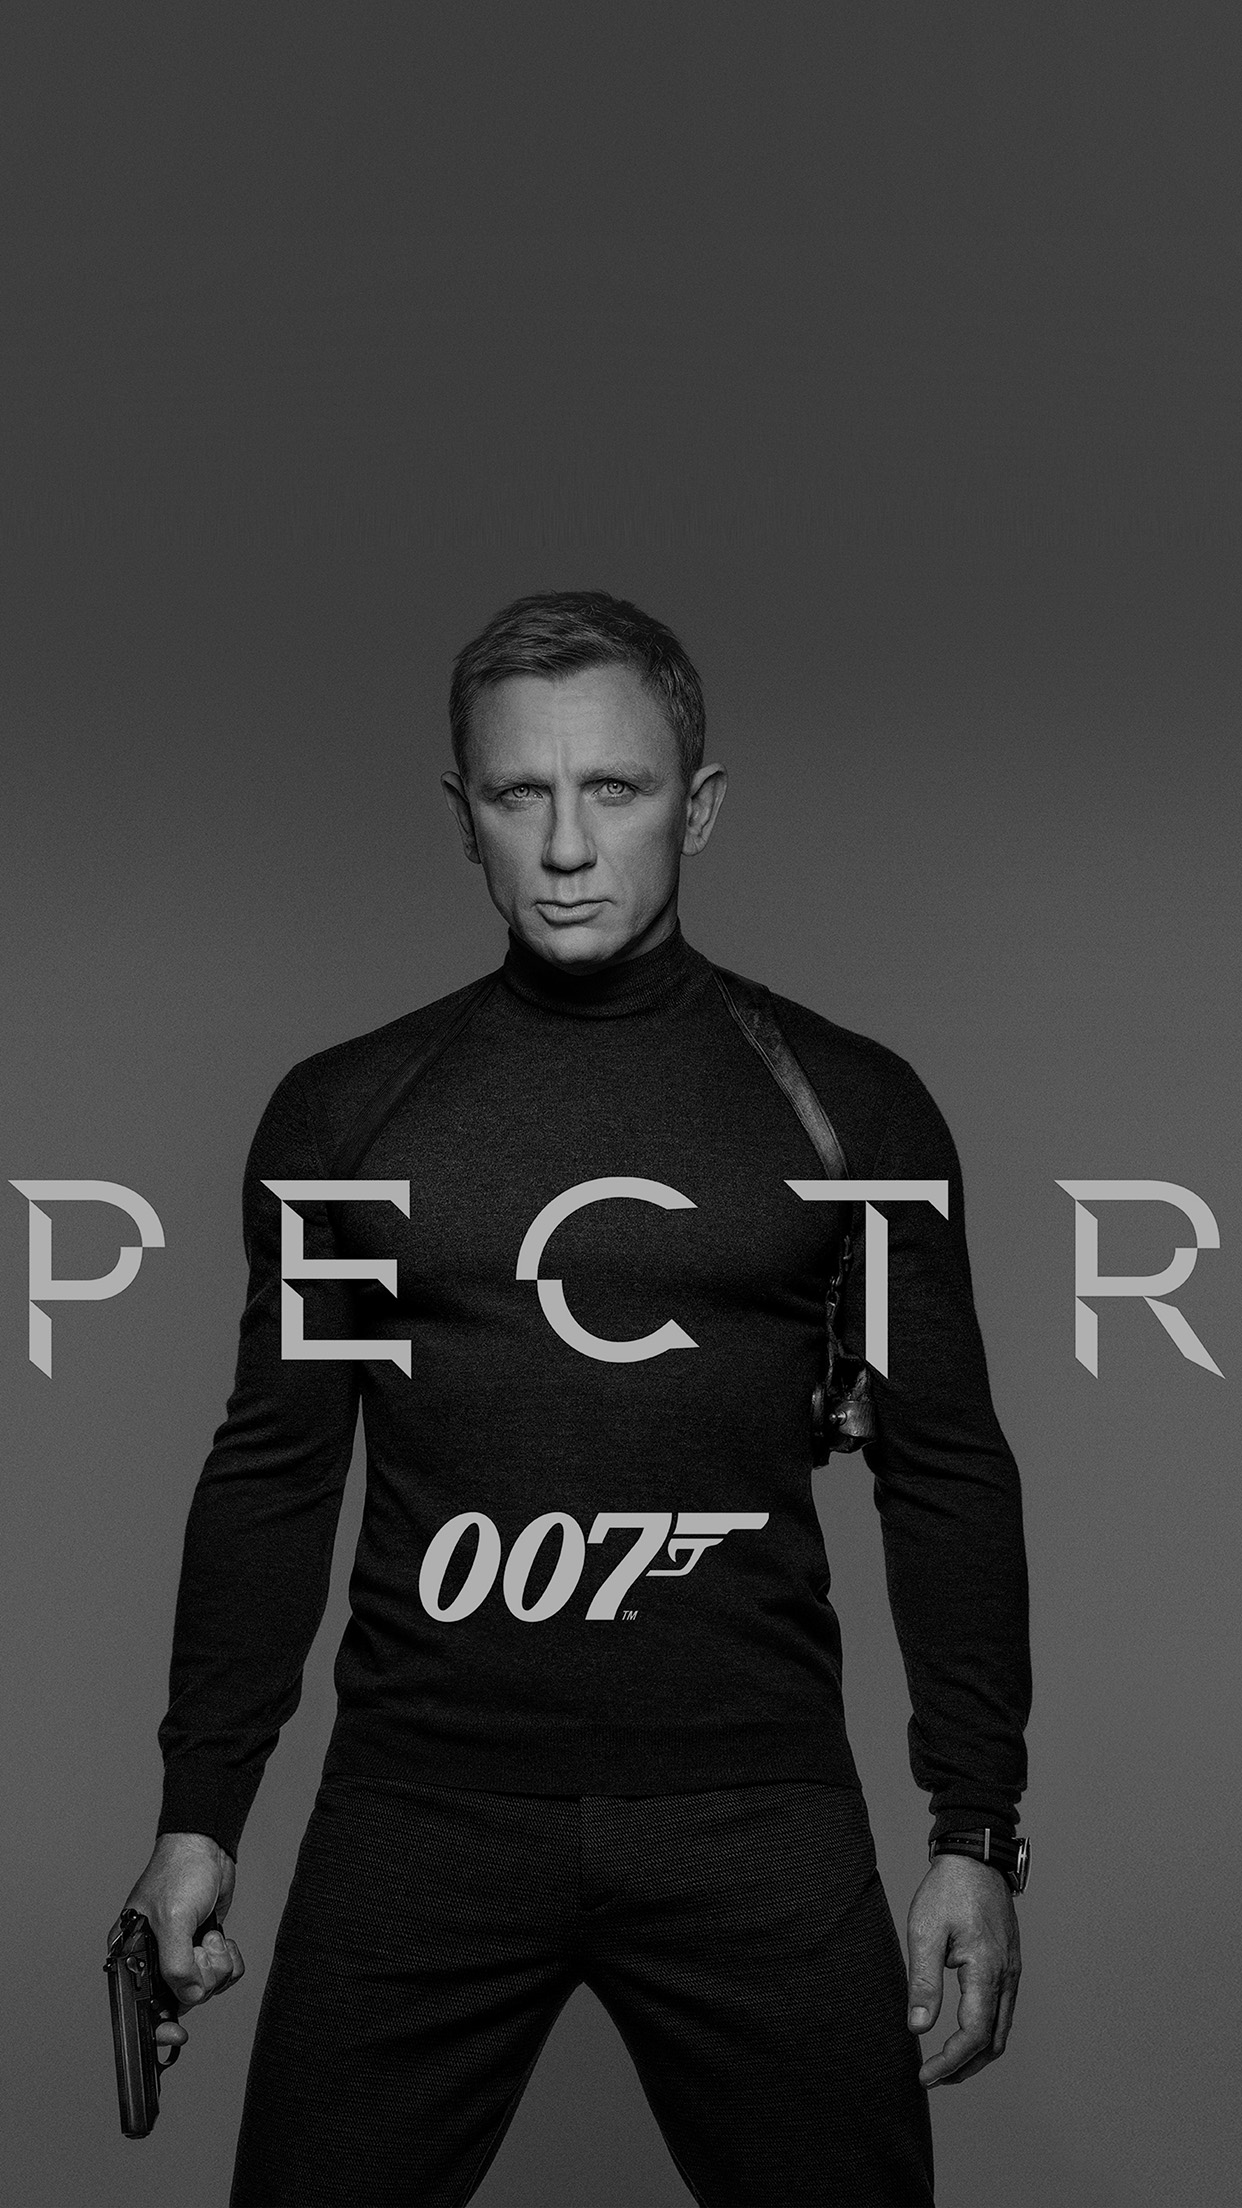 James Bond 007 Spectre Movie Film Poster Dark Bw Android wallpaper